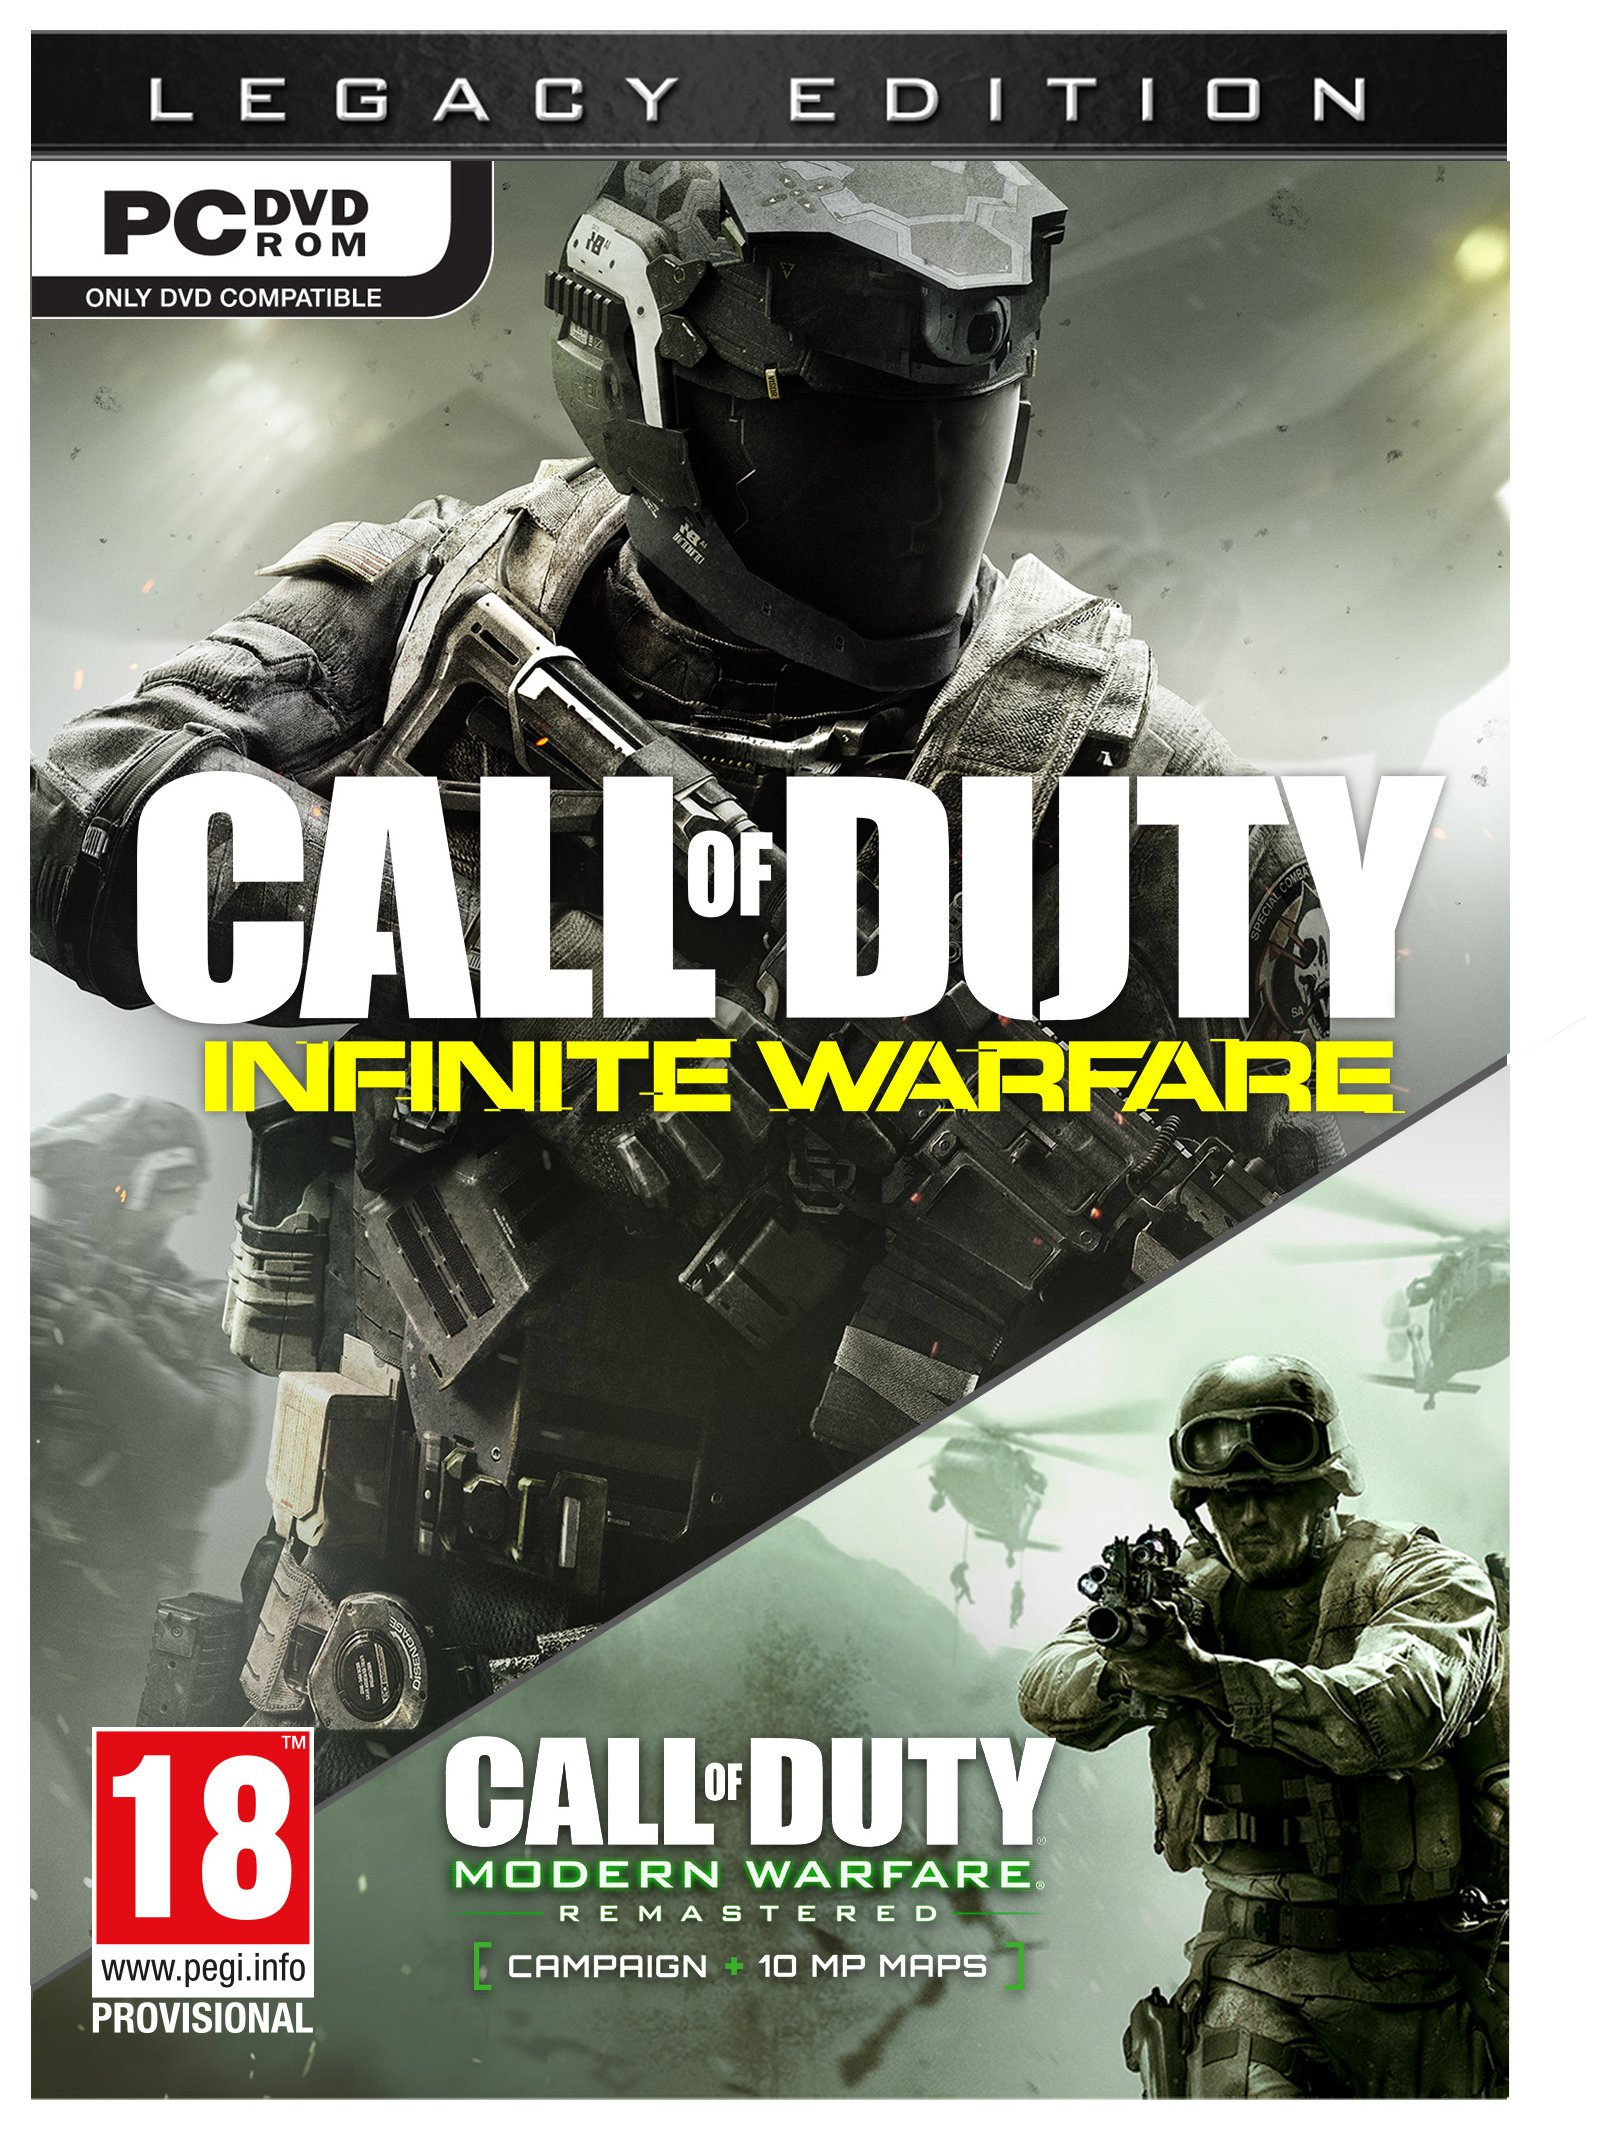 Image of Call of Duty - Infinite Warfare Legacy Edition- PC Game